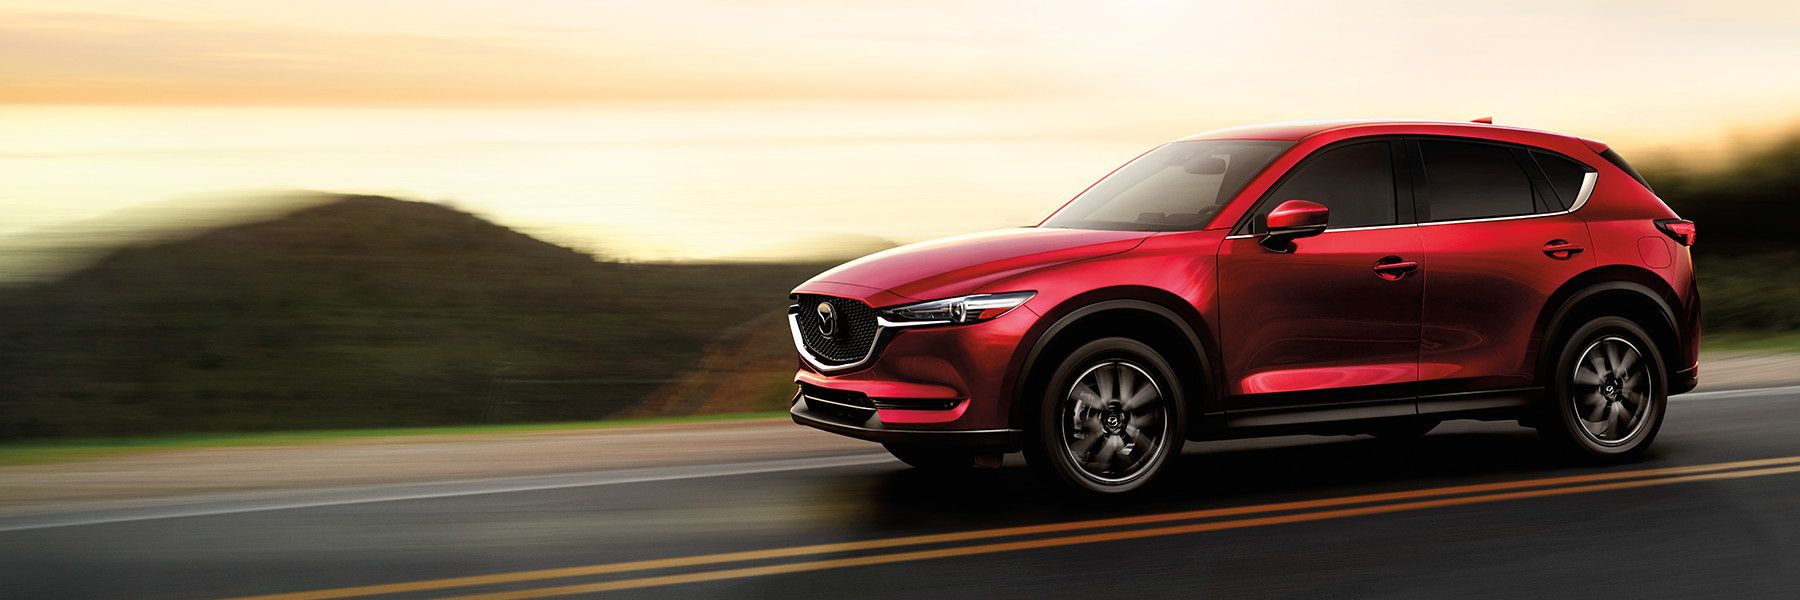 2017 Mazda CX-5 vs 2017 Kia Sportage near Friendswood, TX